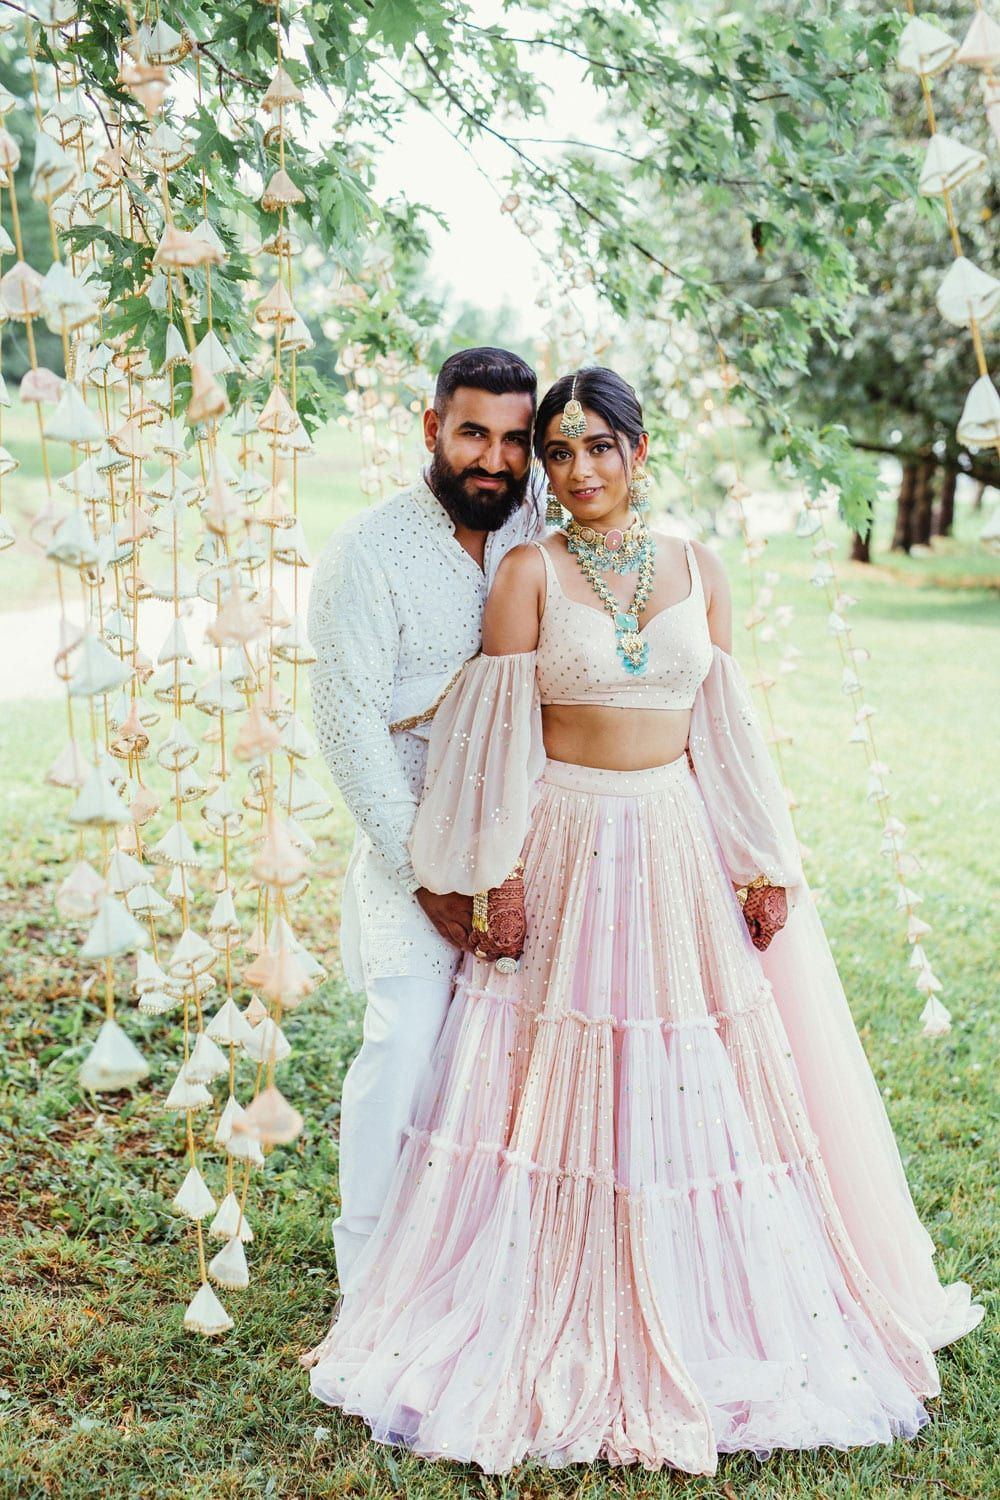 Mani Jassal's Boho, Beachy Engagement Party in Caledon, Ontario | Weddingbells